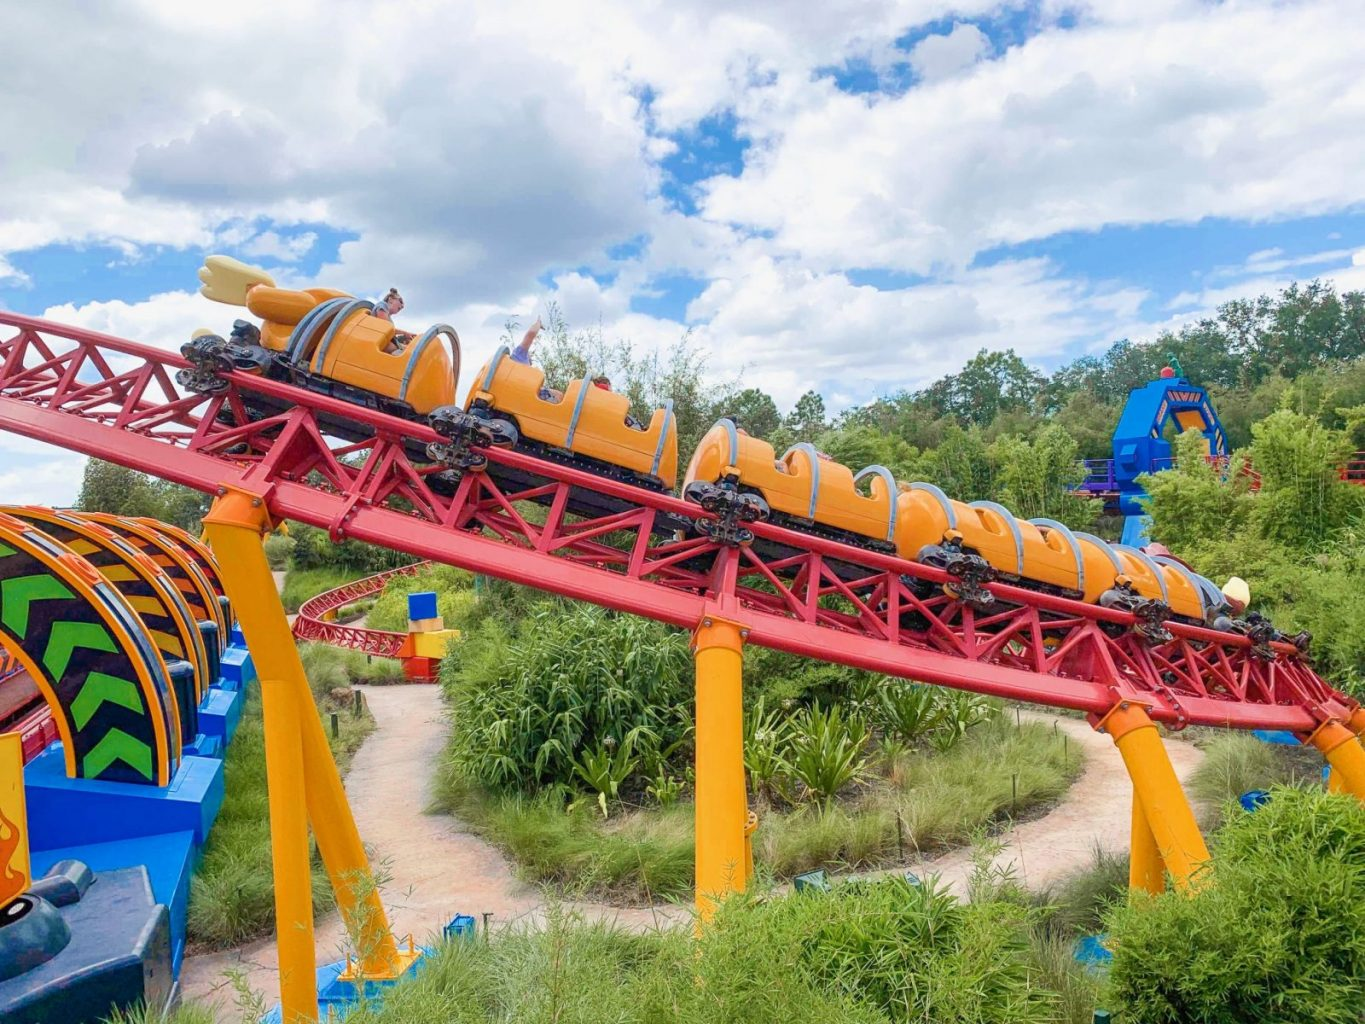 Hollywood Studios Fastpass Slinky Dog Dash Roller Coaster in action